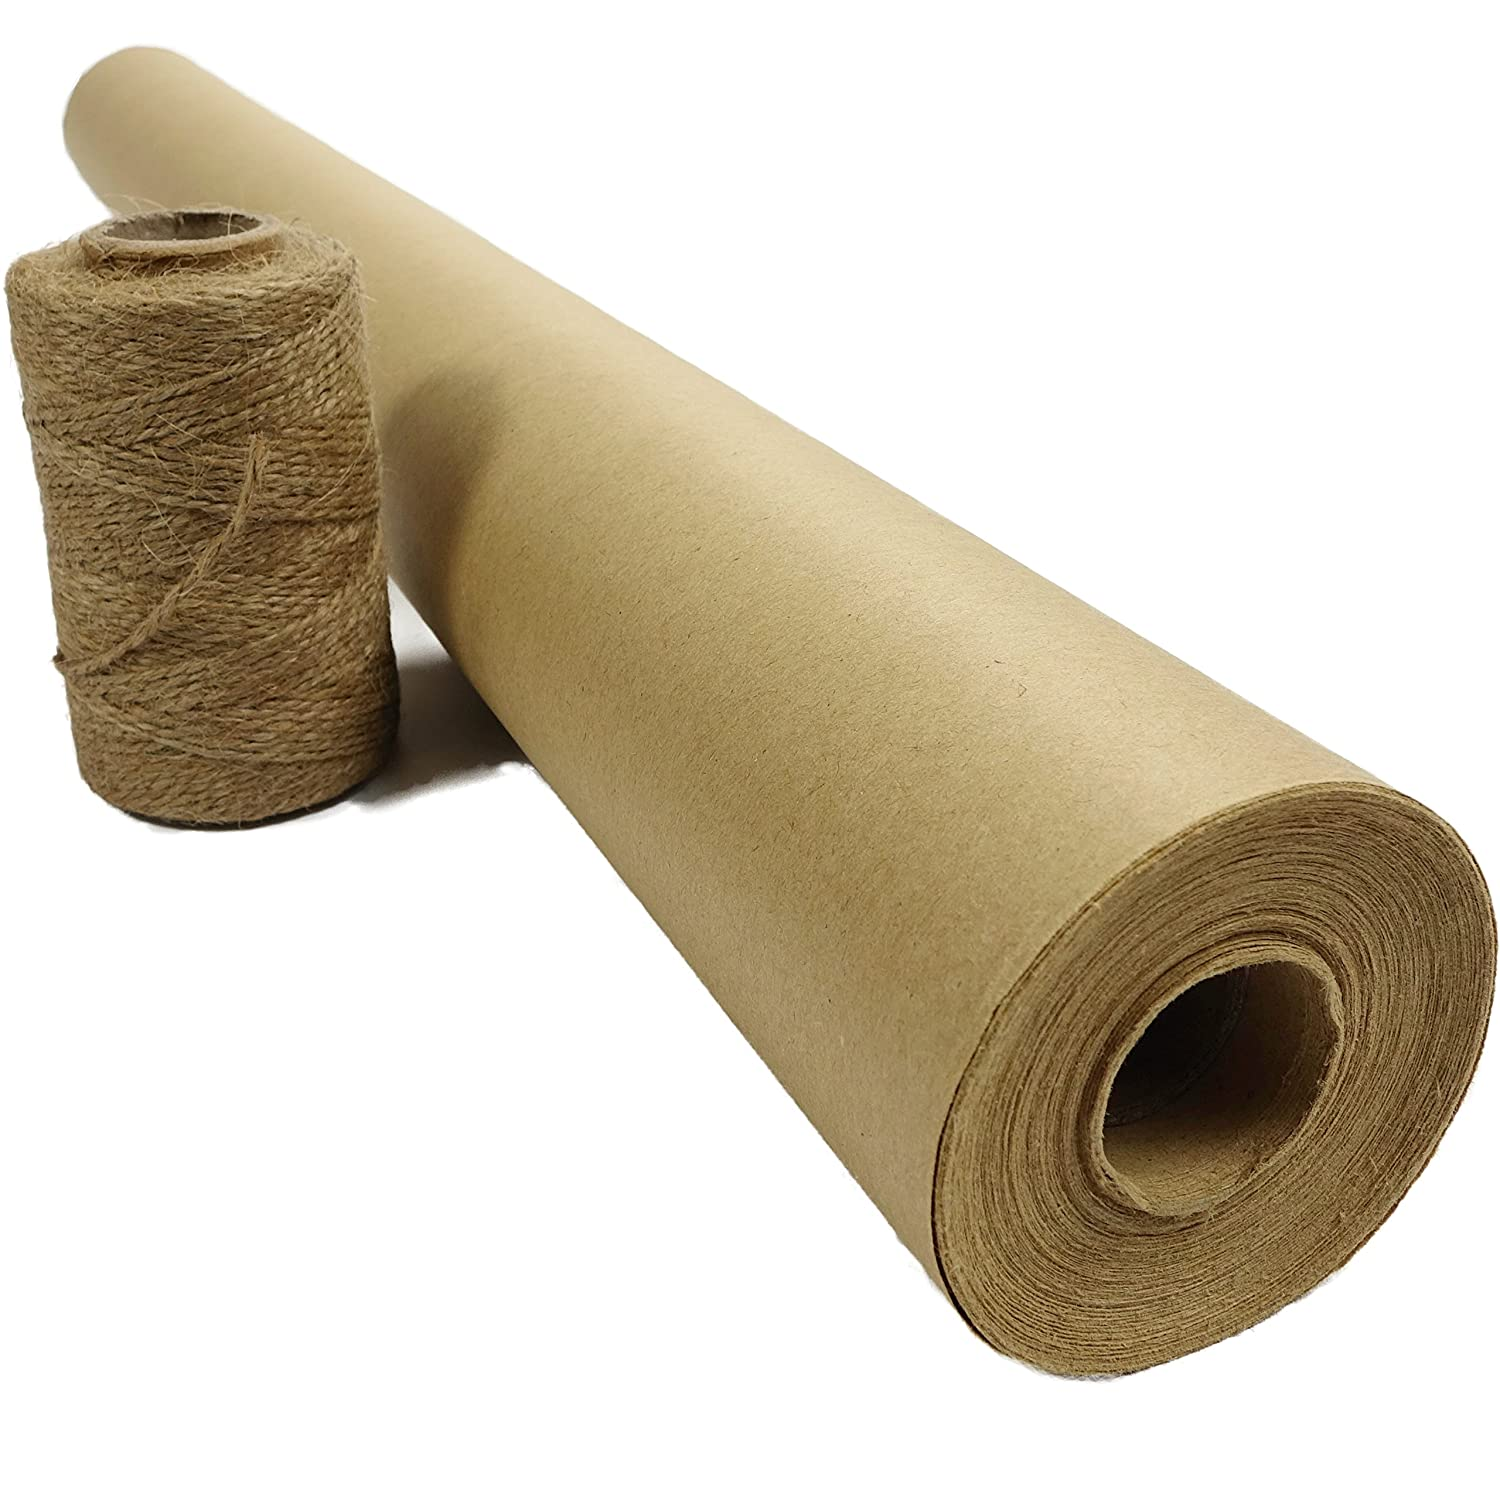 Brown Kraft Paper Roll for Gift Wrapping by Blami | Jumbo 30 x 1200 (100 ft) XL thickness 50# recycled Made in USA | with Jute Twine | shipping, packing, table runner, dunnage parcel, postal craft Blami Arts 4336878824